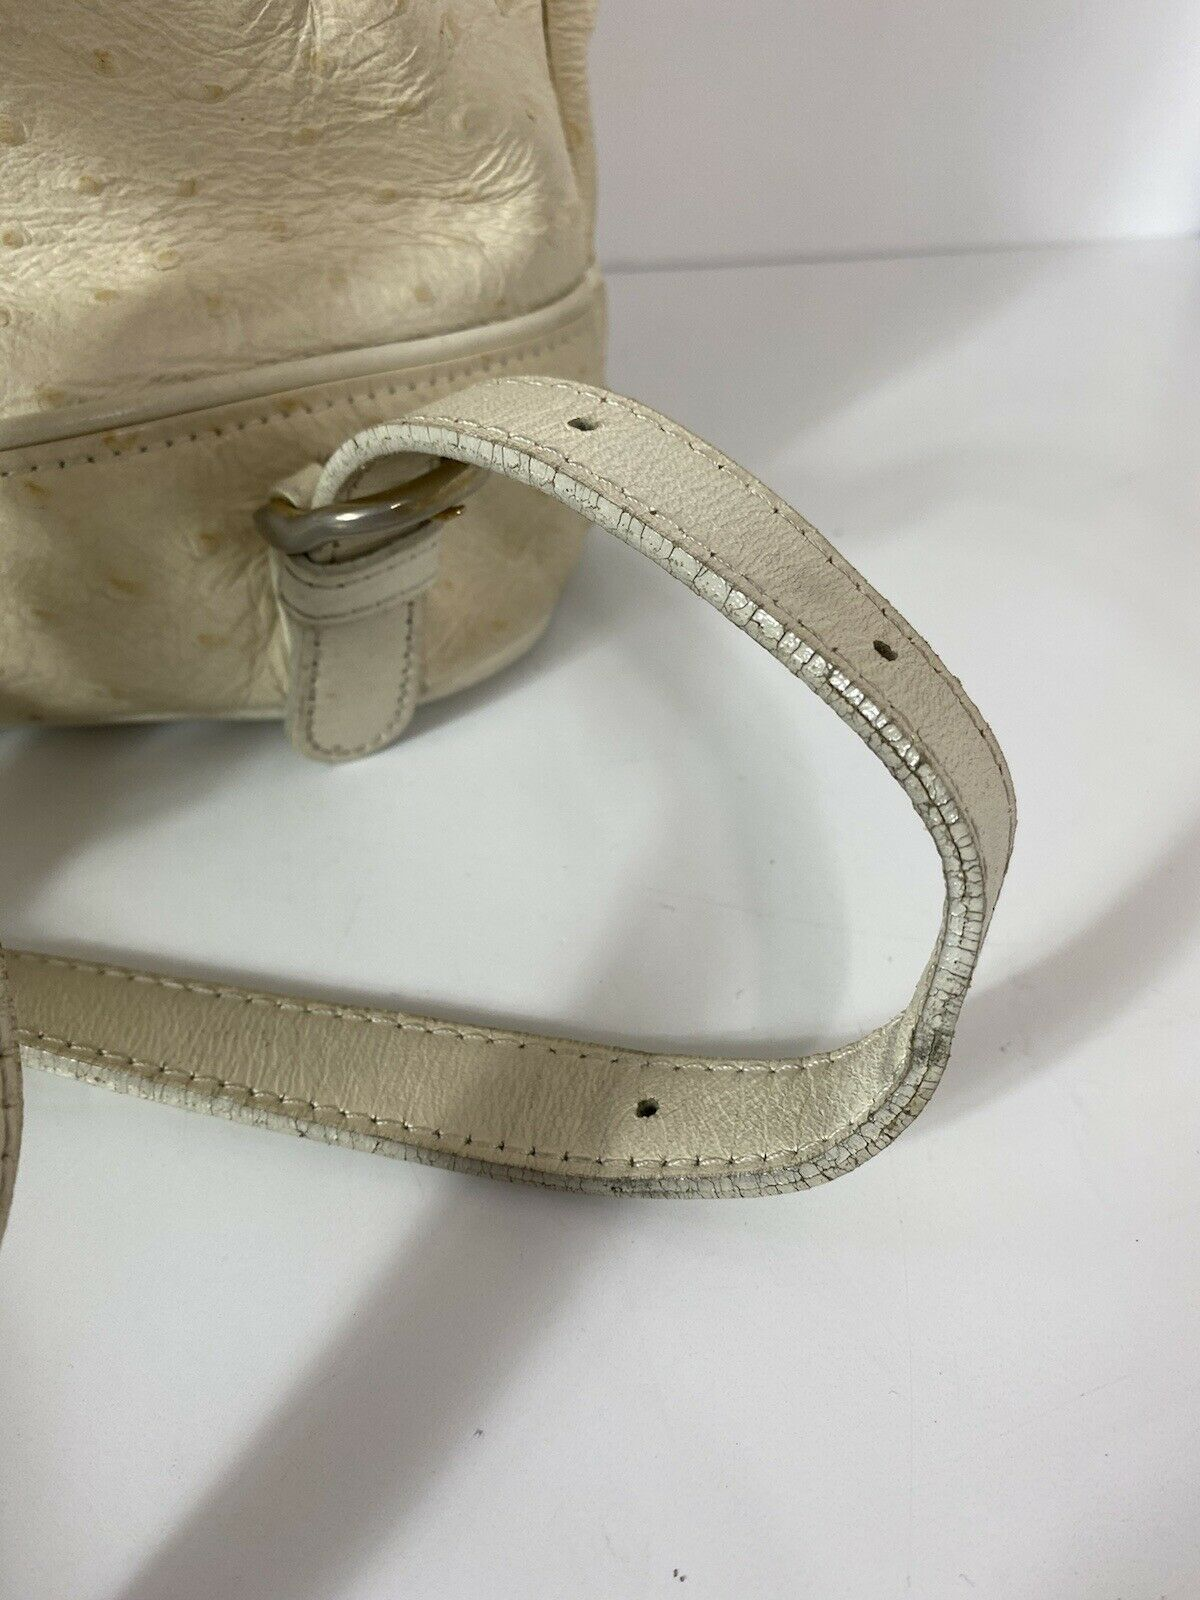 RARE VTG GIANNI VERSACE 90S WHITE OSTRICH BACKPACK - image 9